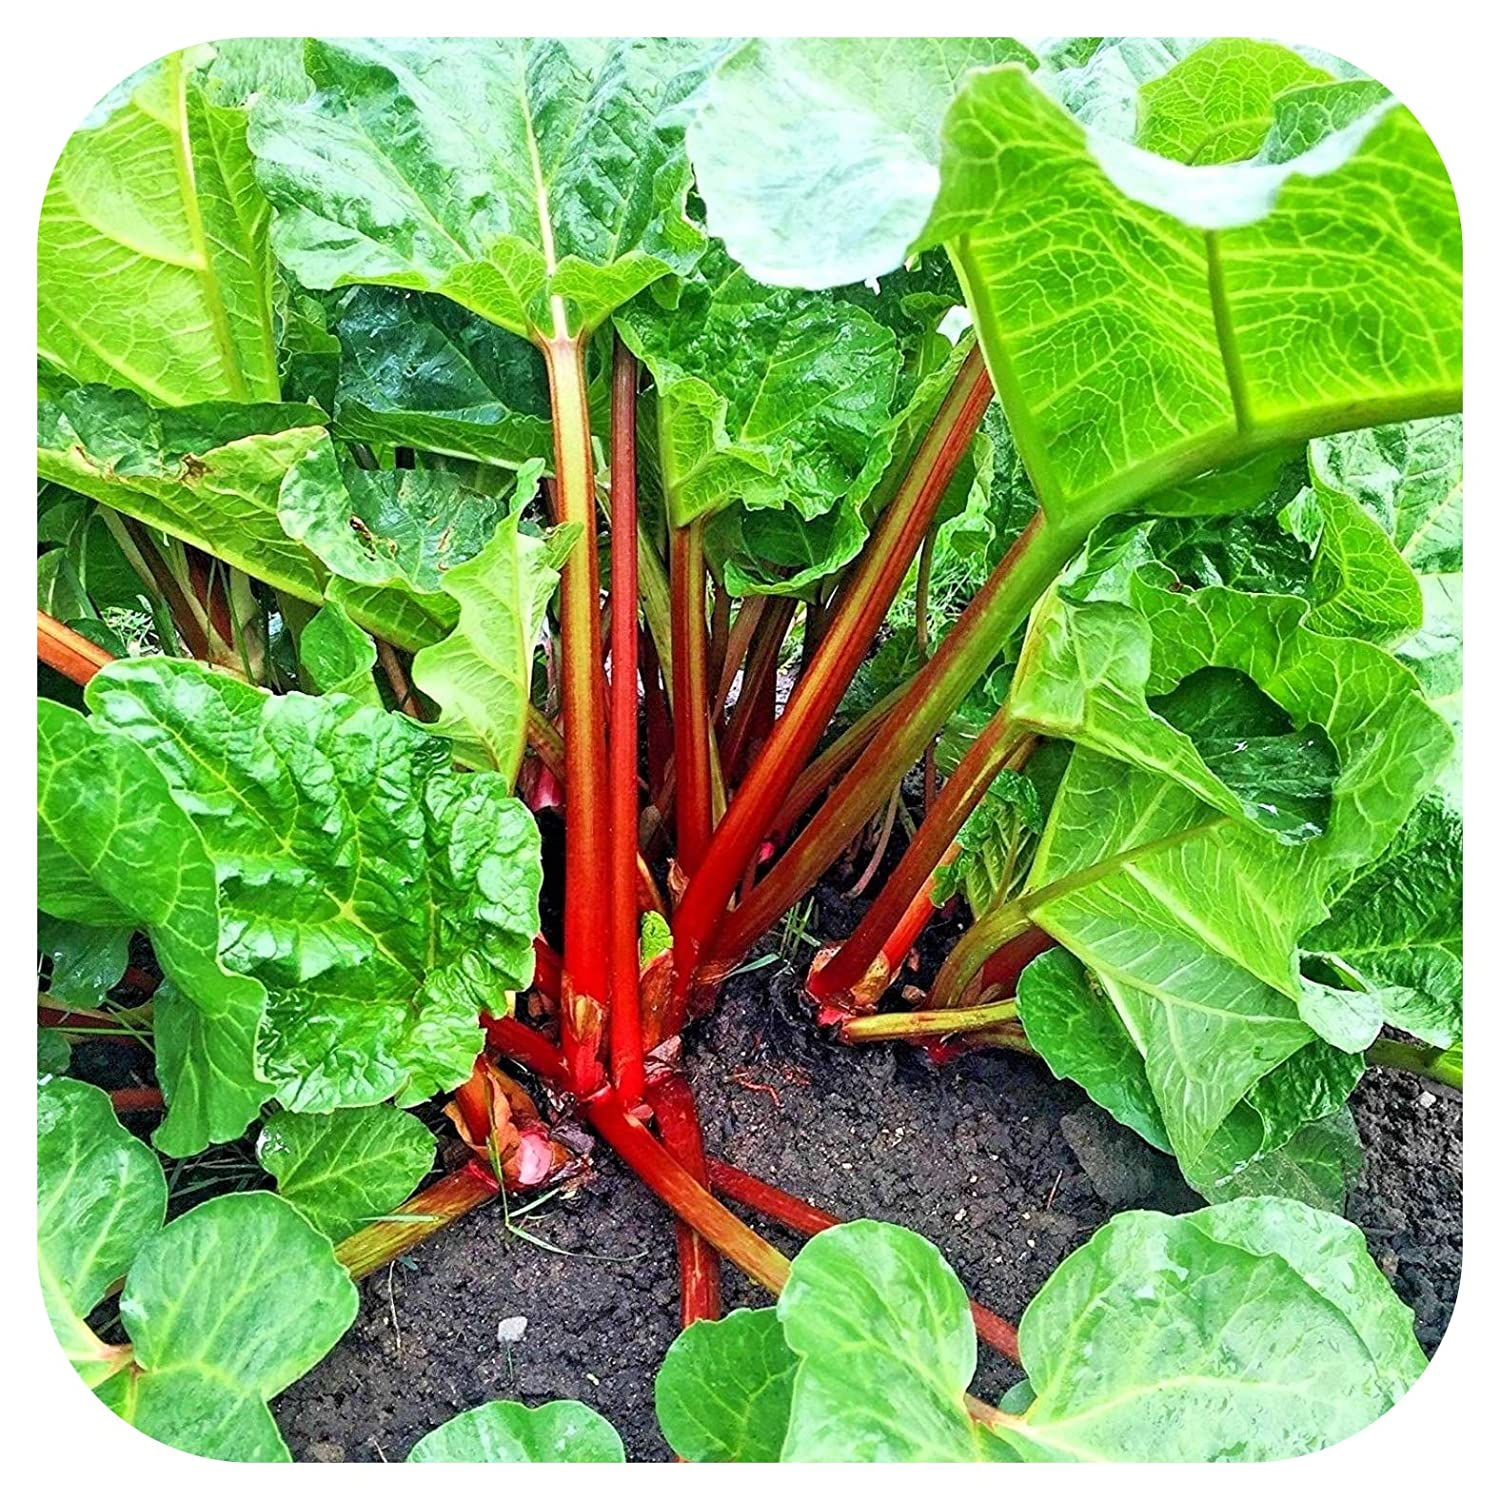 Rhubarb Crowns//Plants Red Champagne x 2 by Plug Plants Express Limited